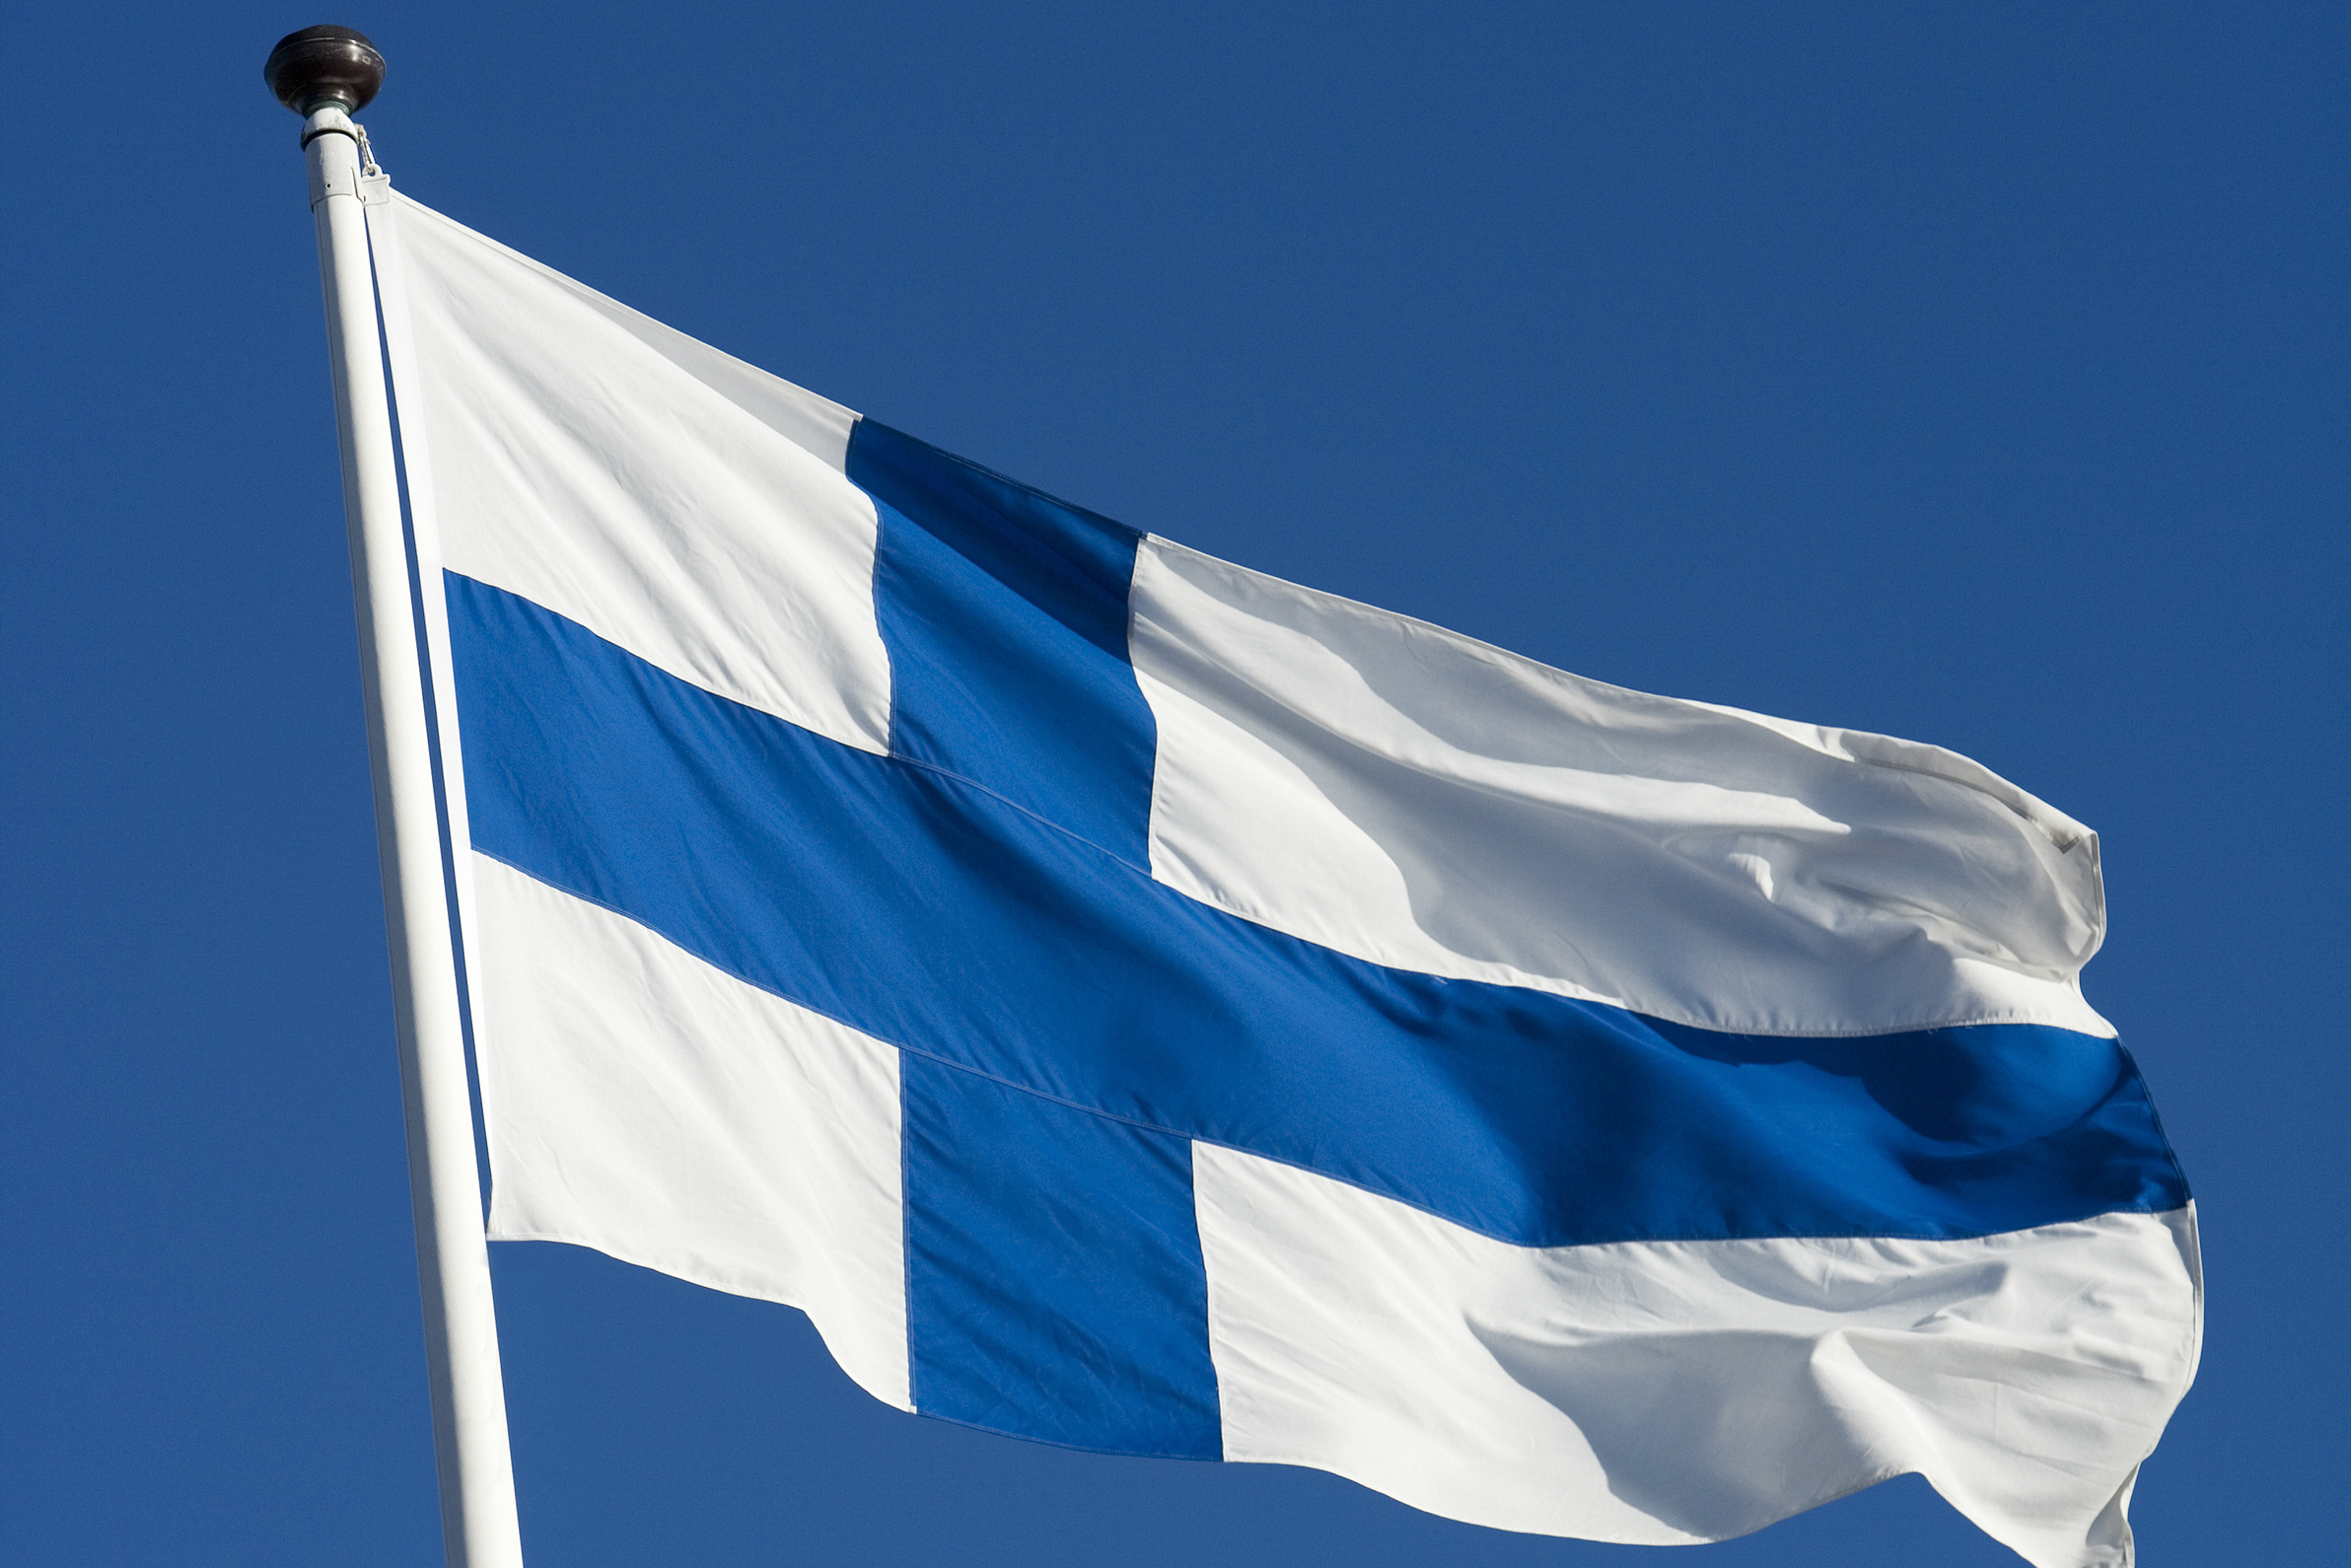 Finland to increase troop levels, defense spending amid heightened tensions